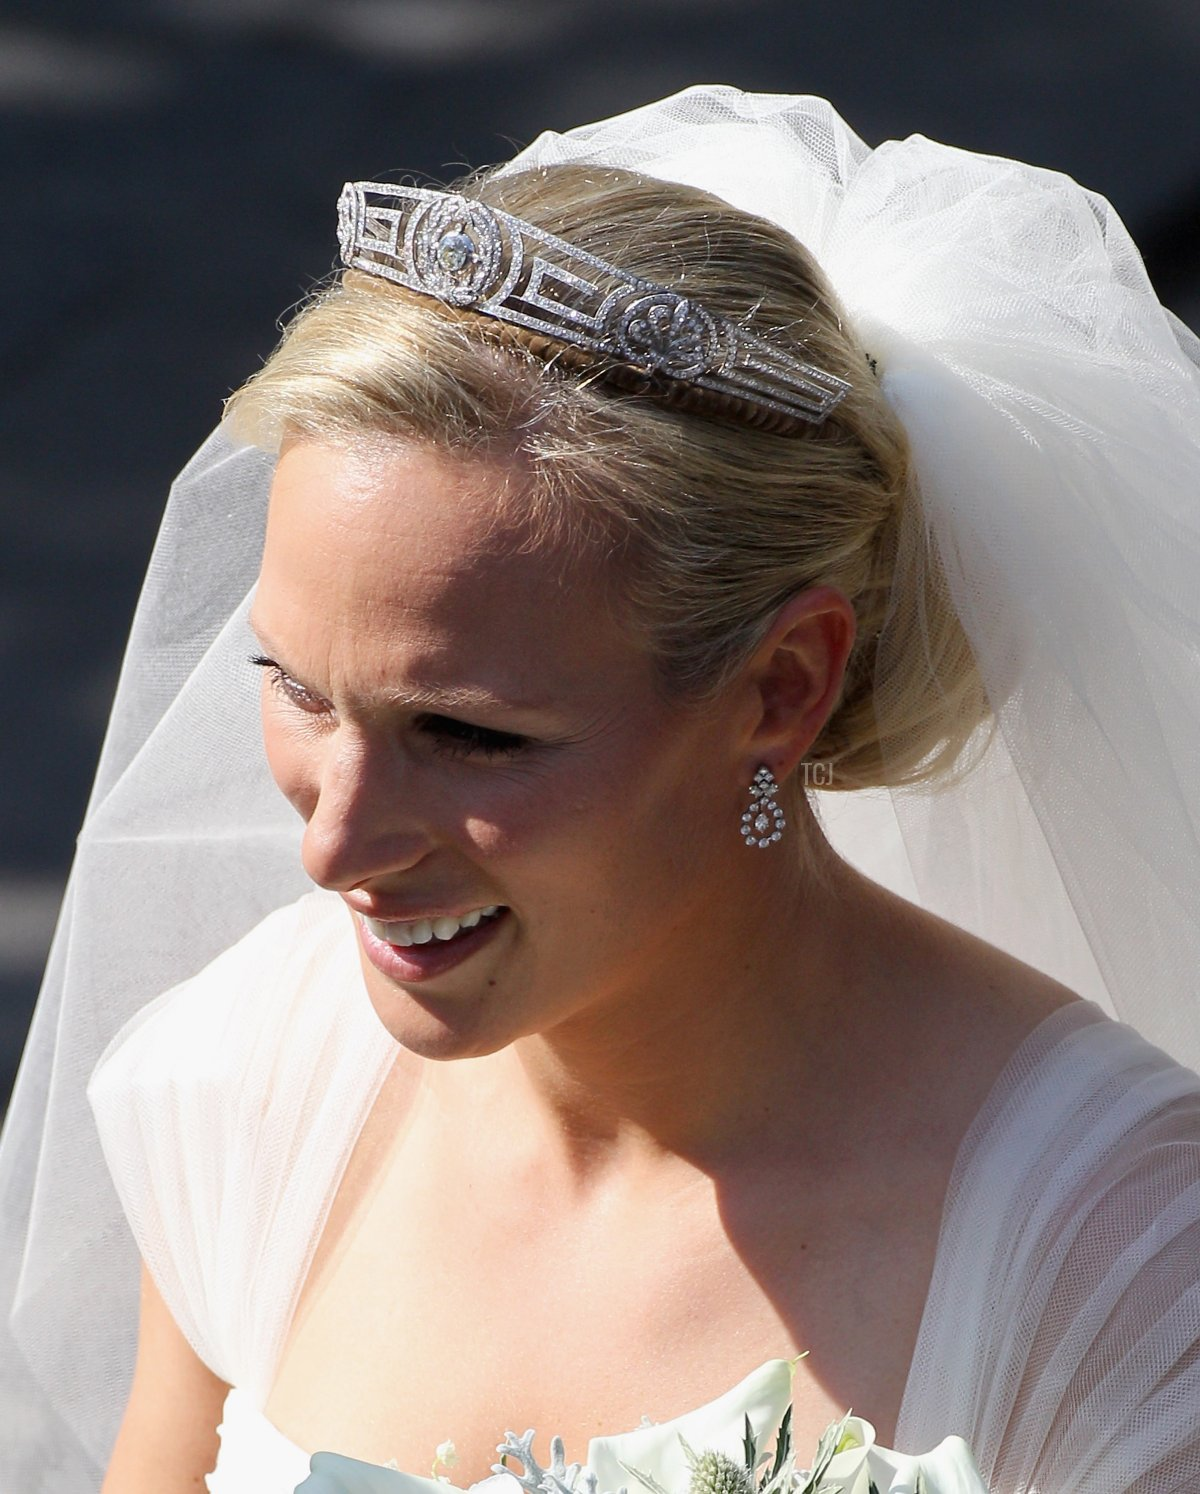 Zara Philips leaves Canongate Kirk on the afternoon of her wedding to Mike Tindall on July 30, 2011 in Edinburgh, Scotland